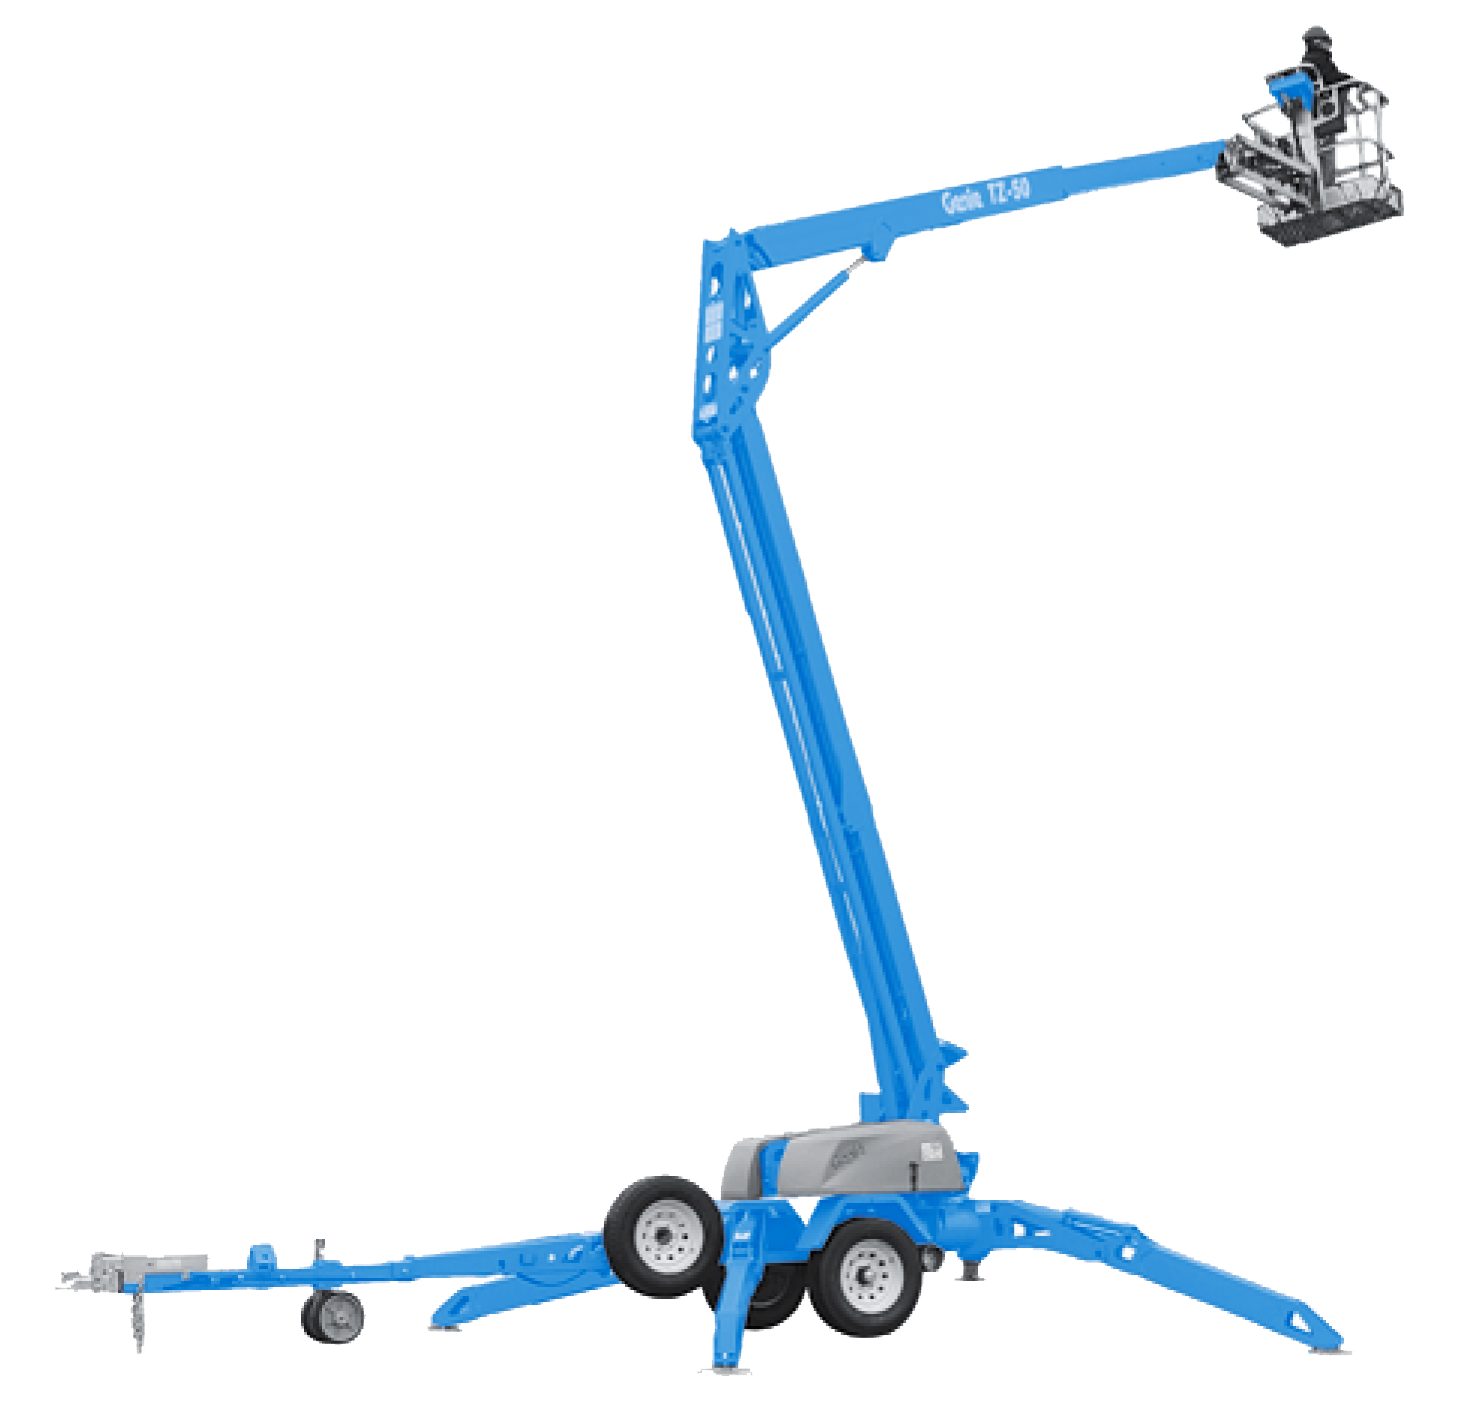 GENIE TZ-50 | Towable Boom Lifts on Hire | WESTERN INDIA SKY LIFTER